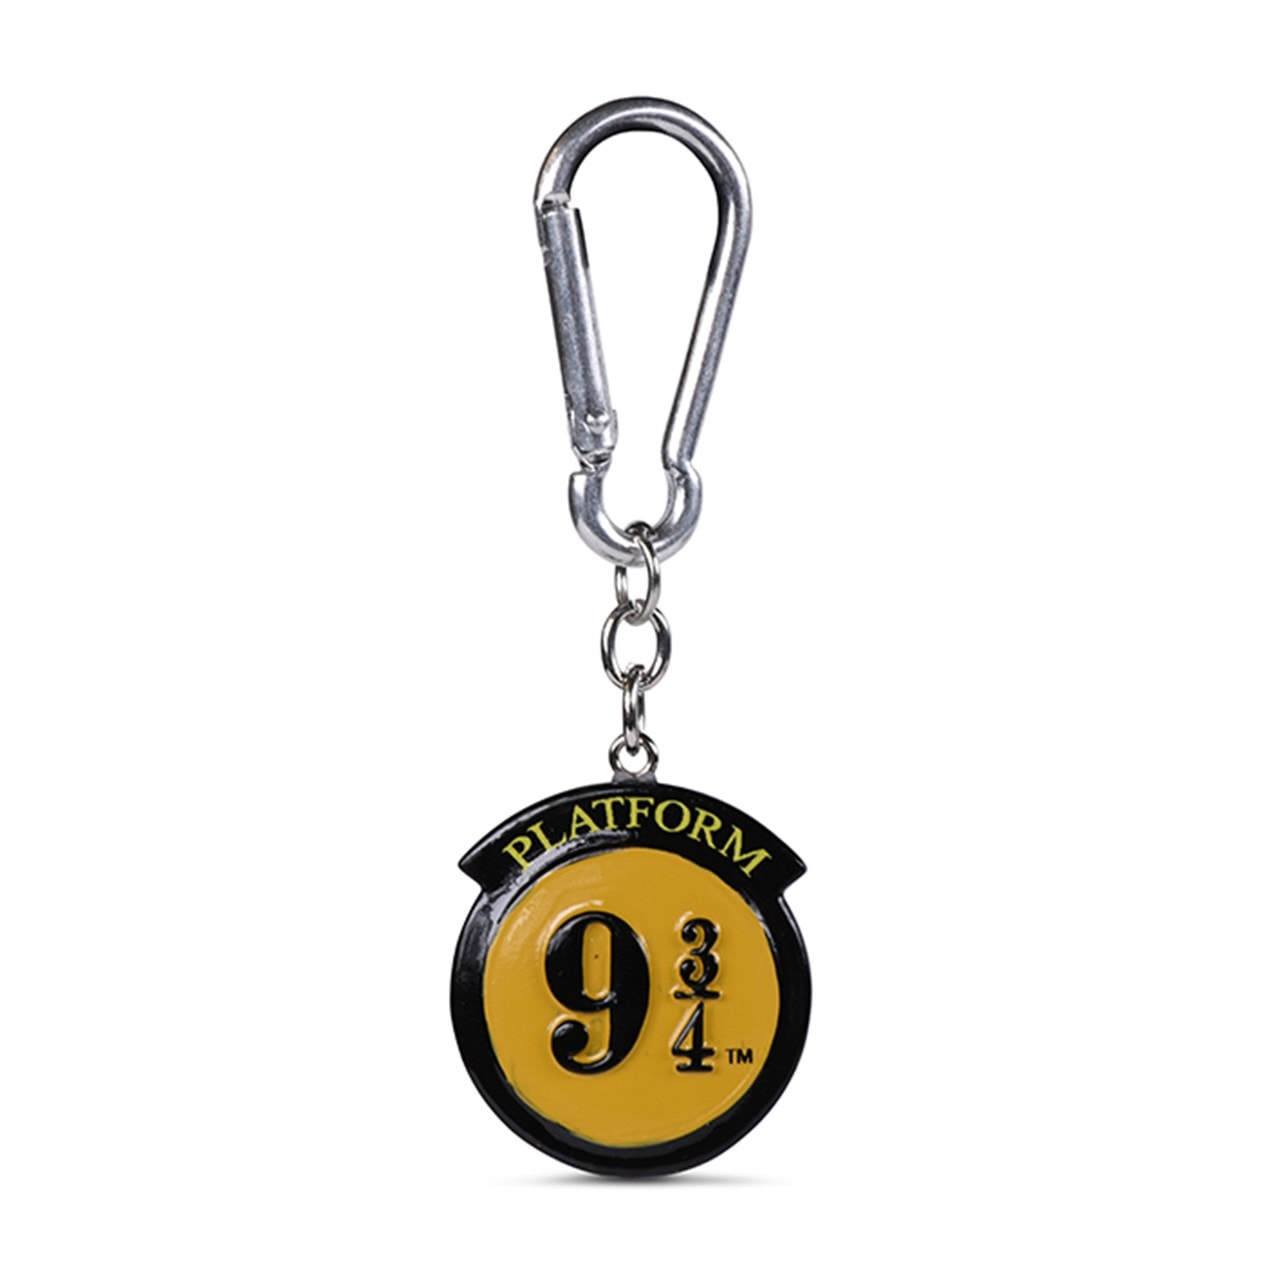 Platform 9 3/4: Harry Potter 3D Keychain - 2